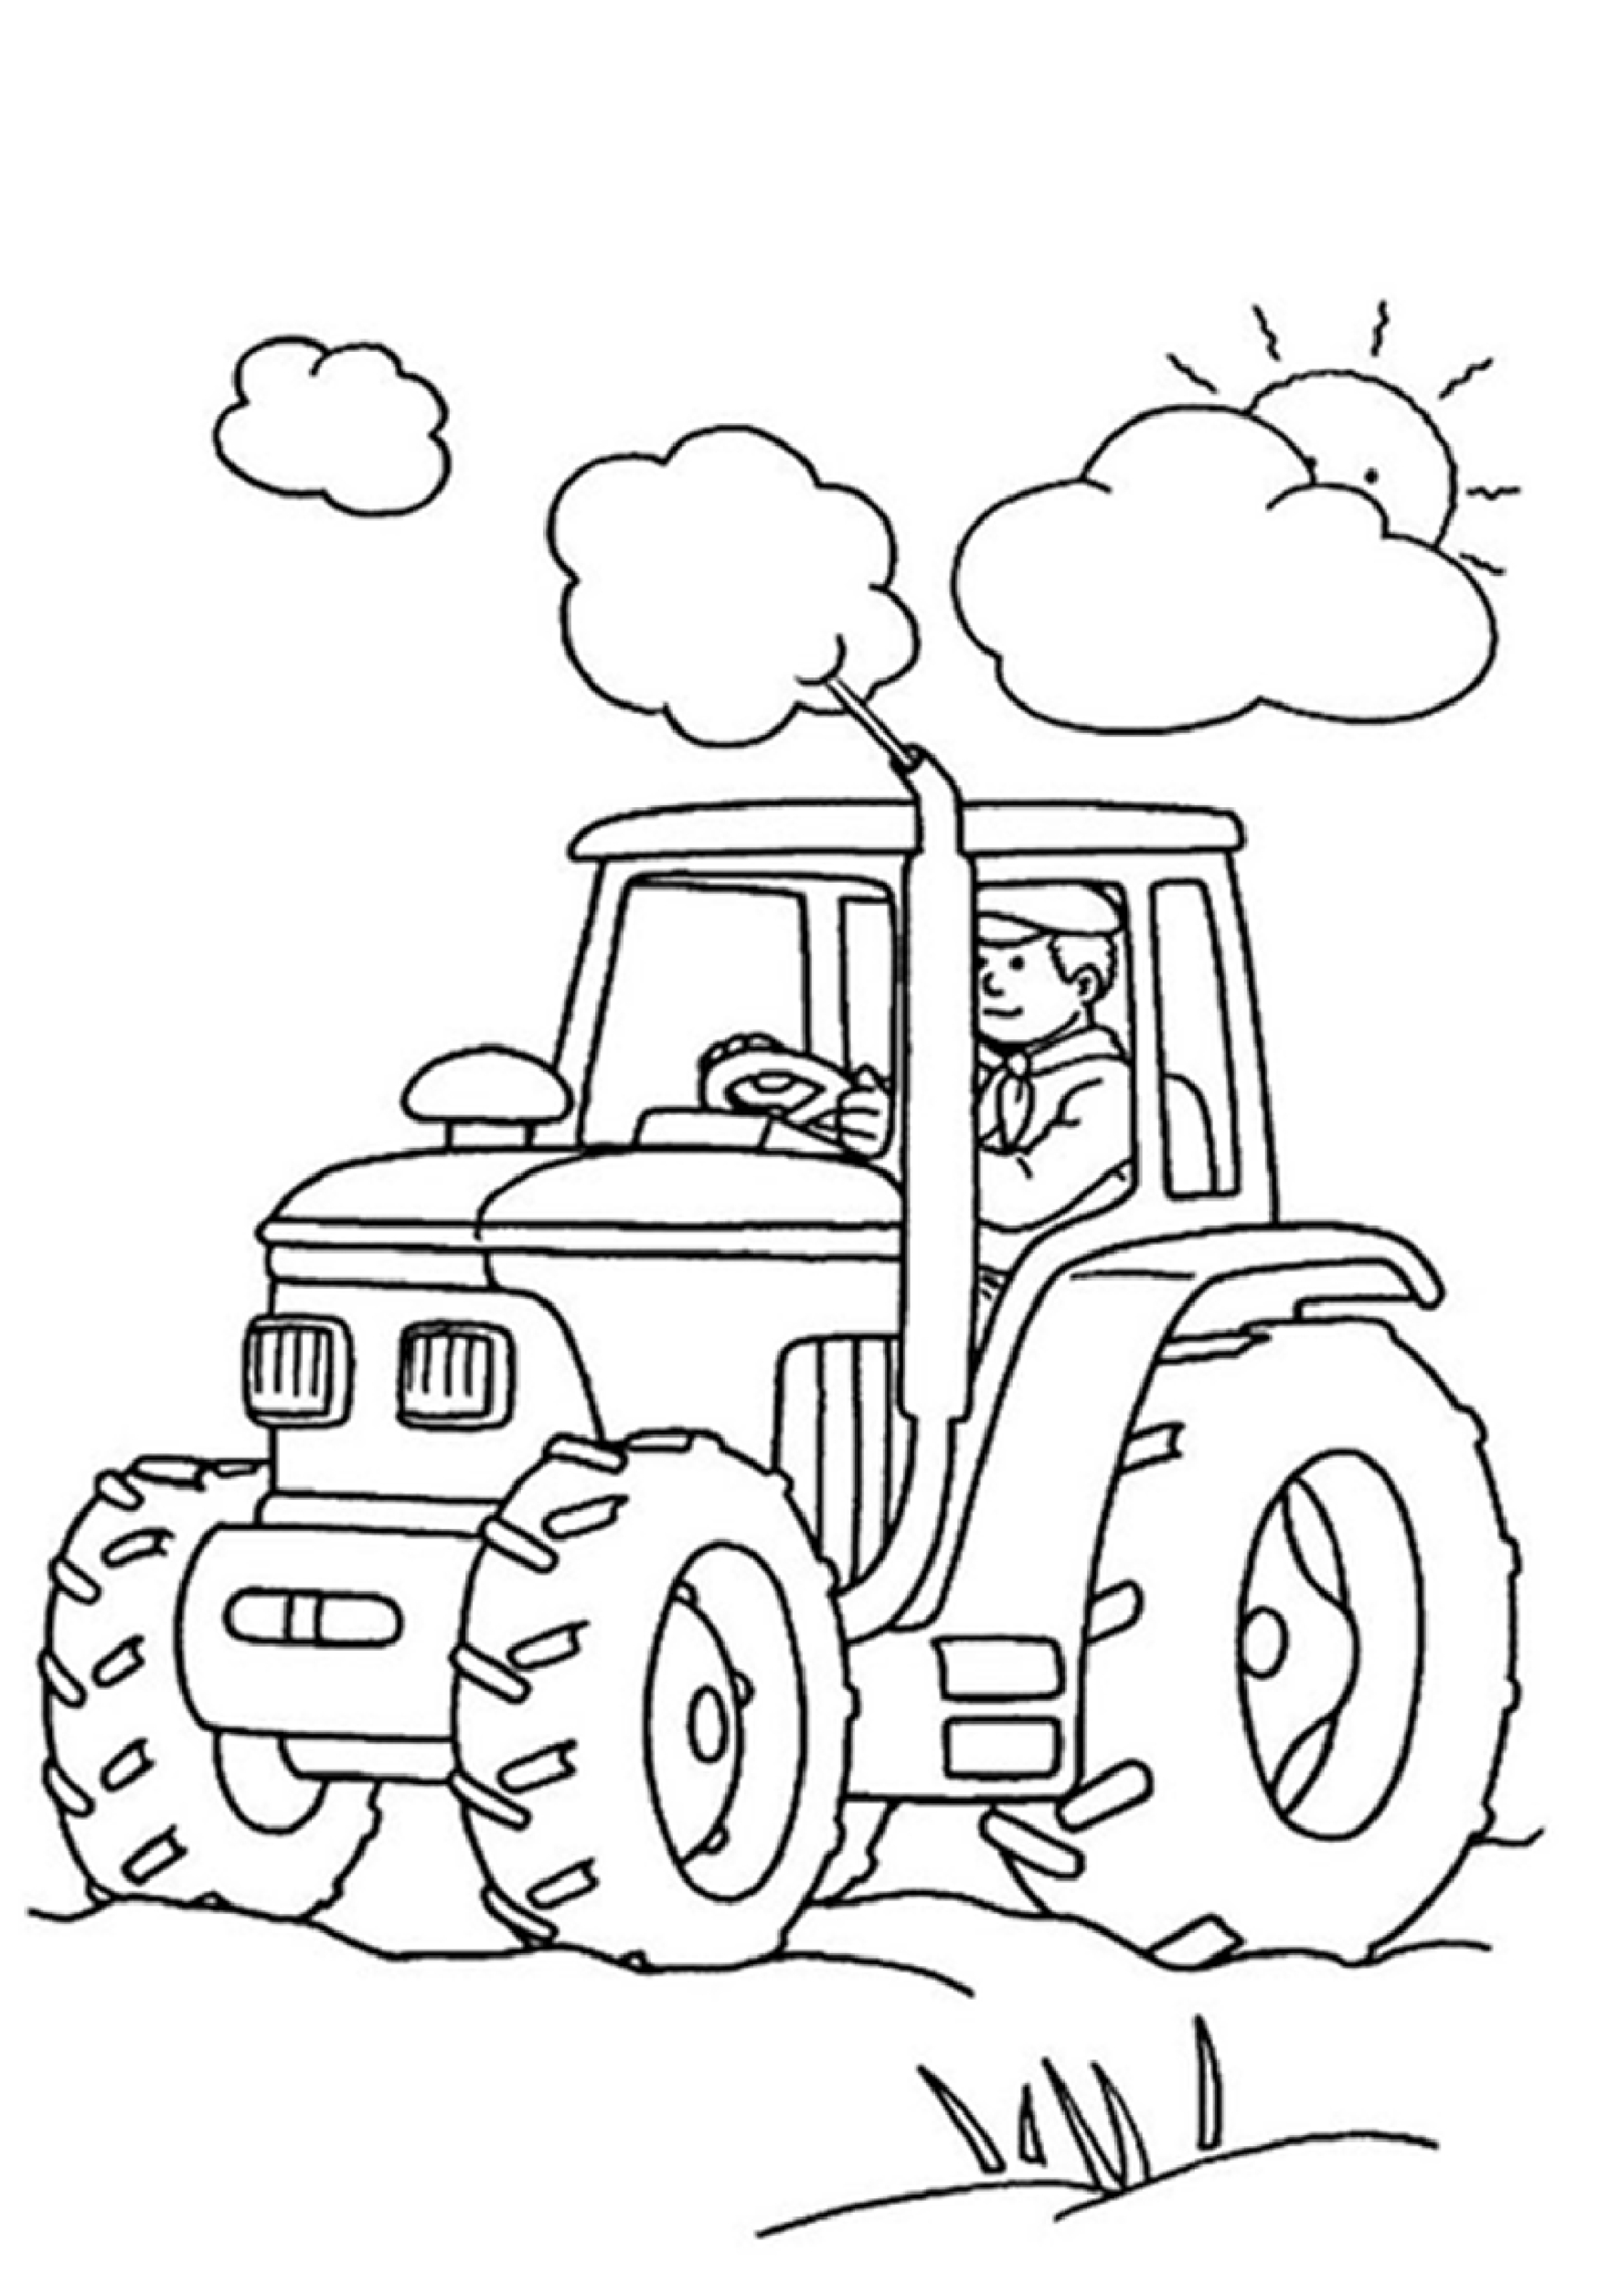 printable coloring pages for boys - free coloring pages for boys